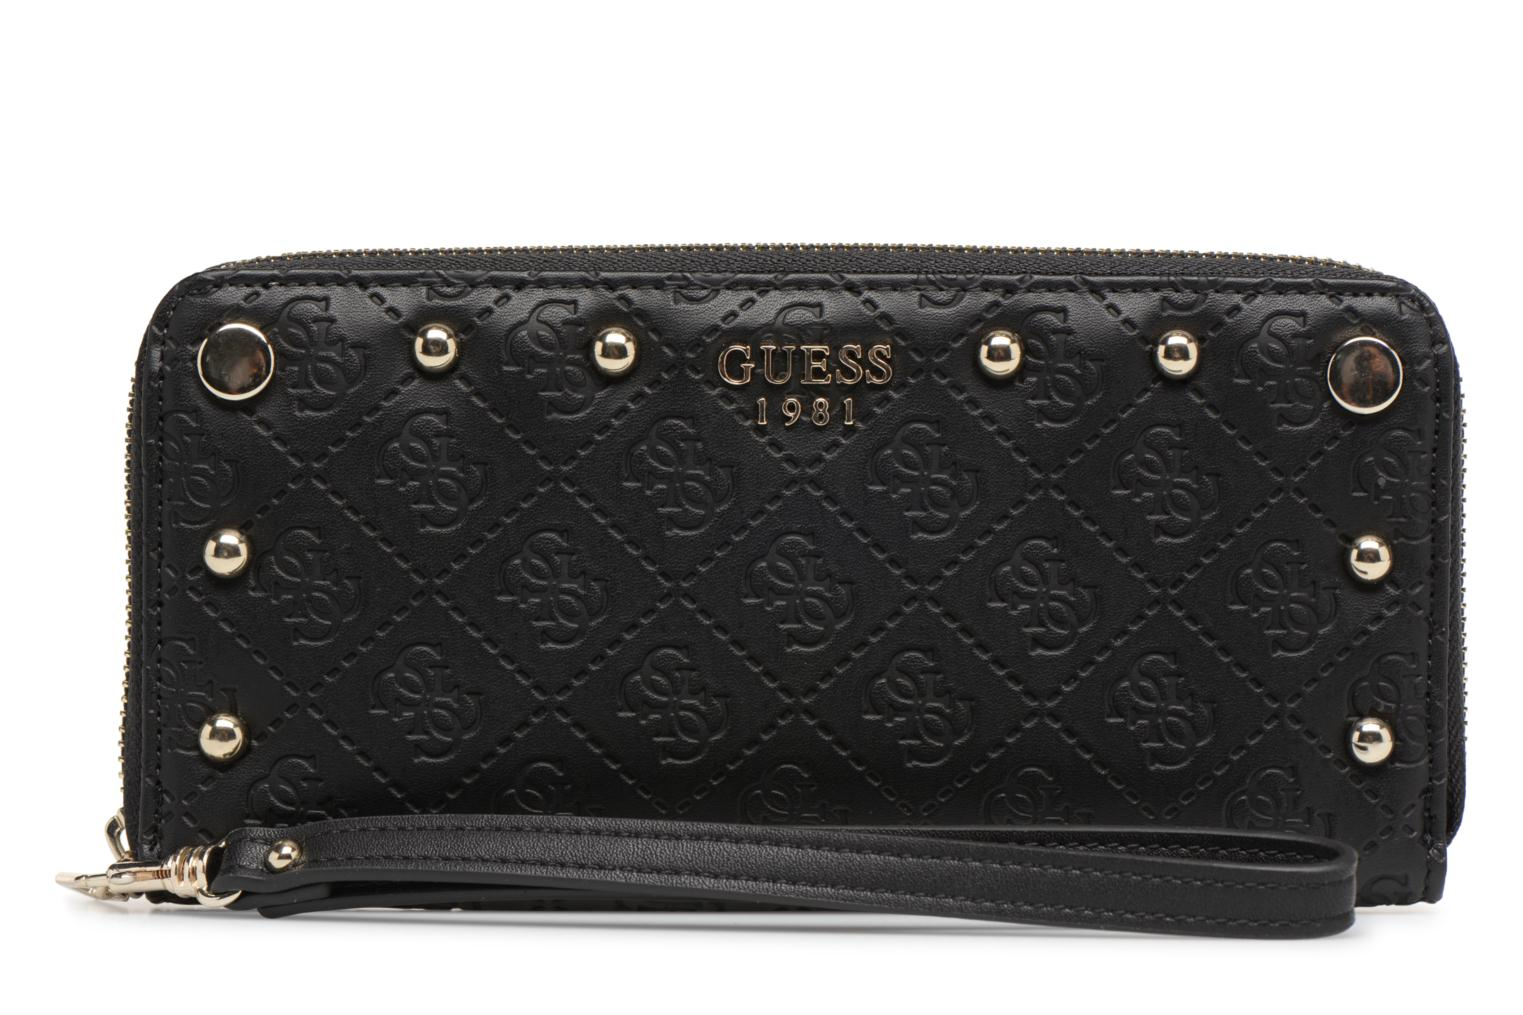 Black Around Guess Large Zip Coast to Coast xWCZZqRw4g